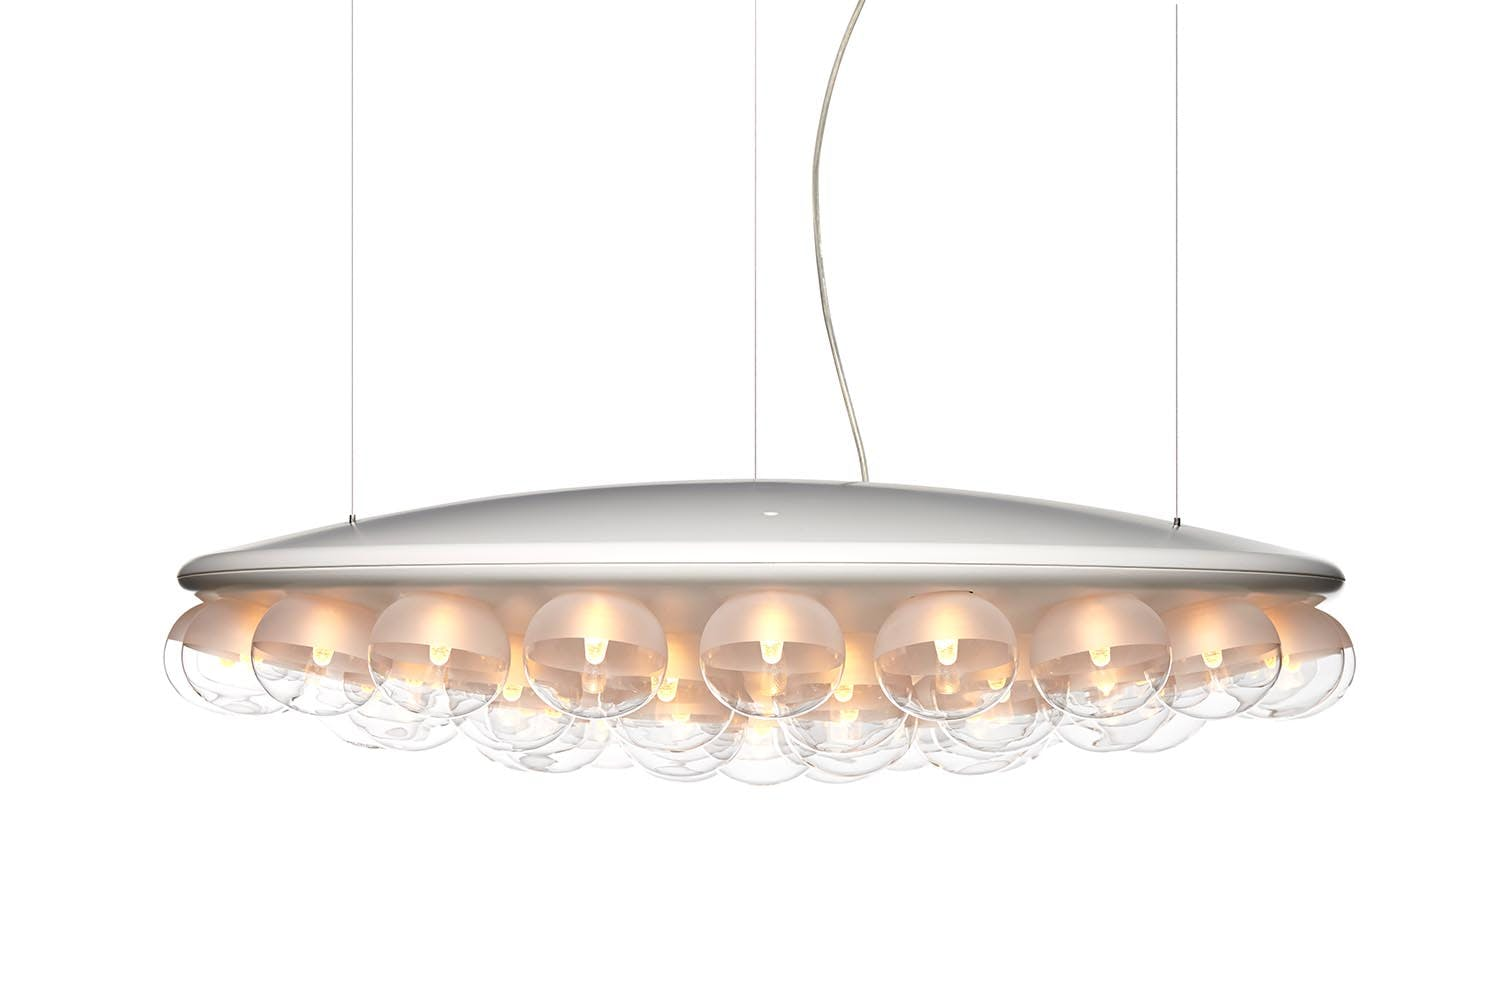 Prop Light Round By Bertjan Pot For Moooi Space Furniture